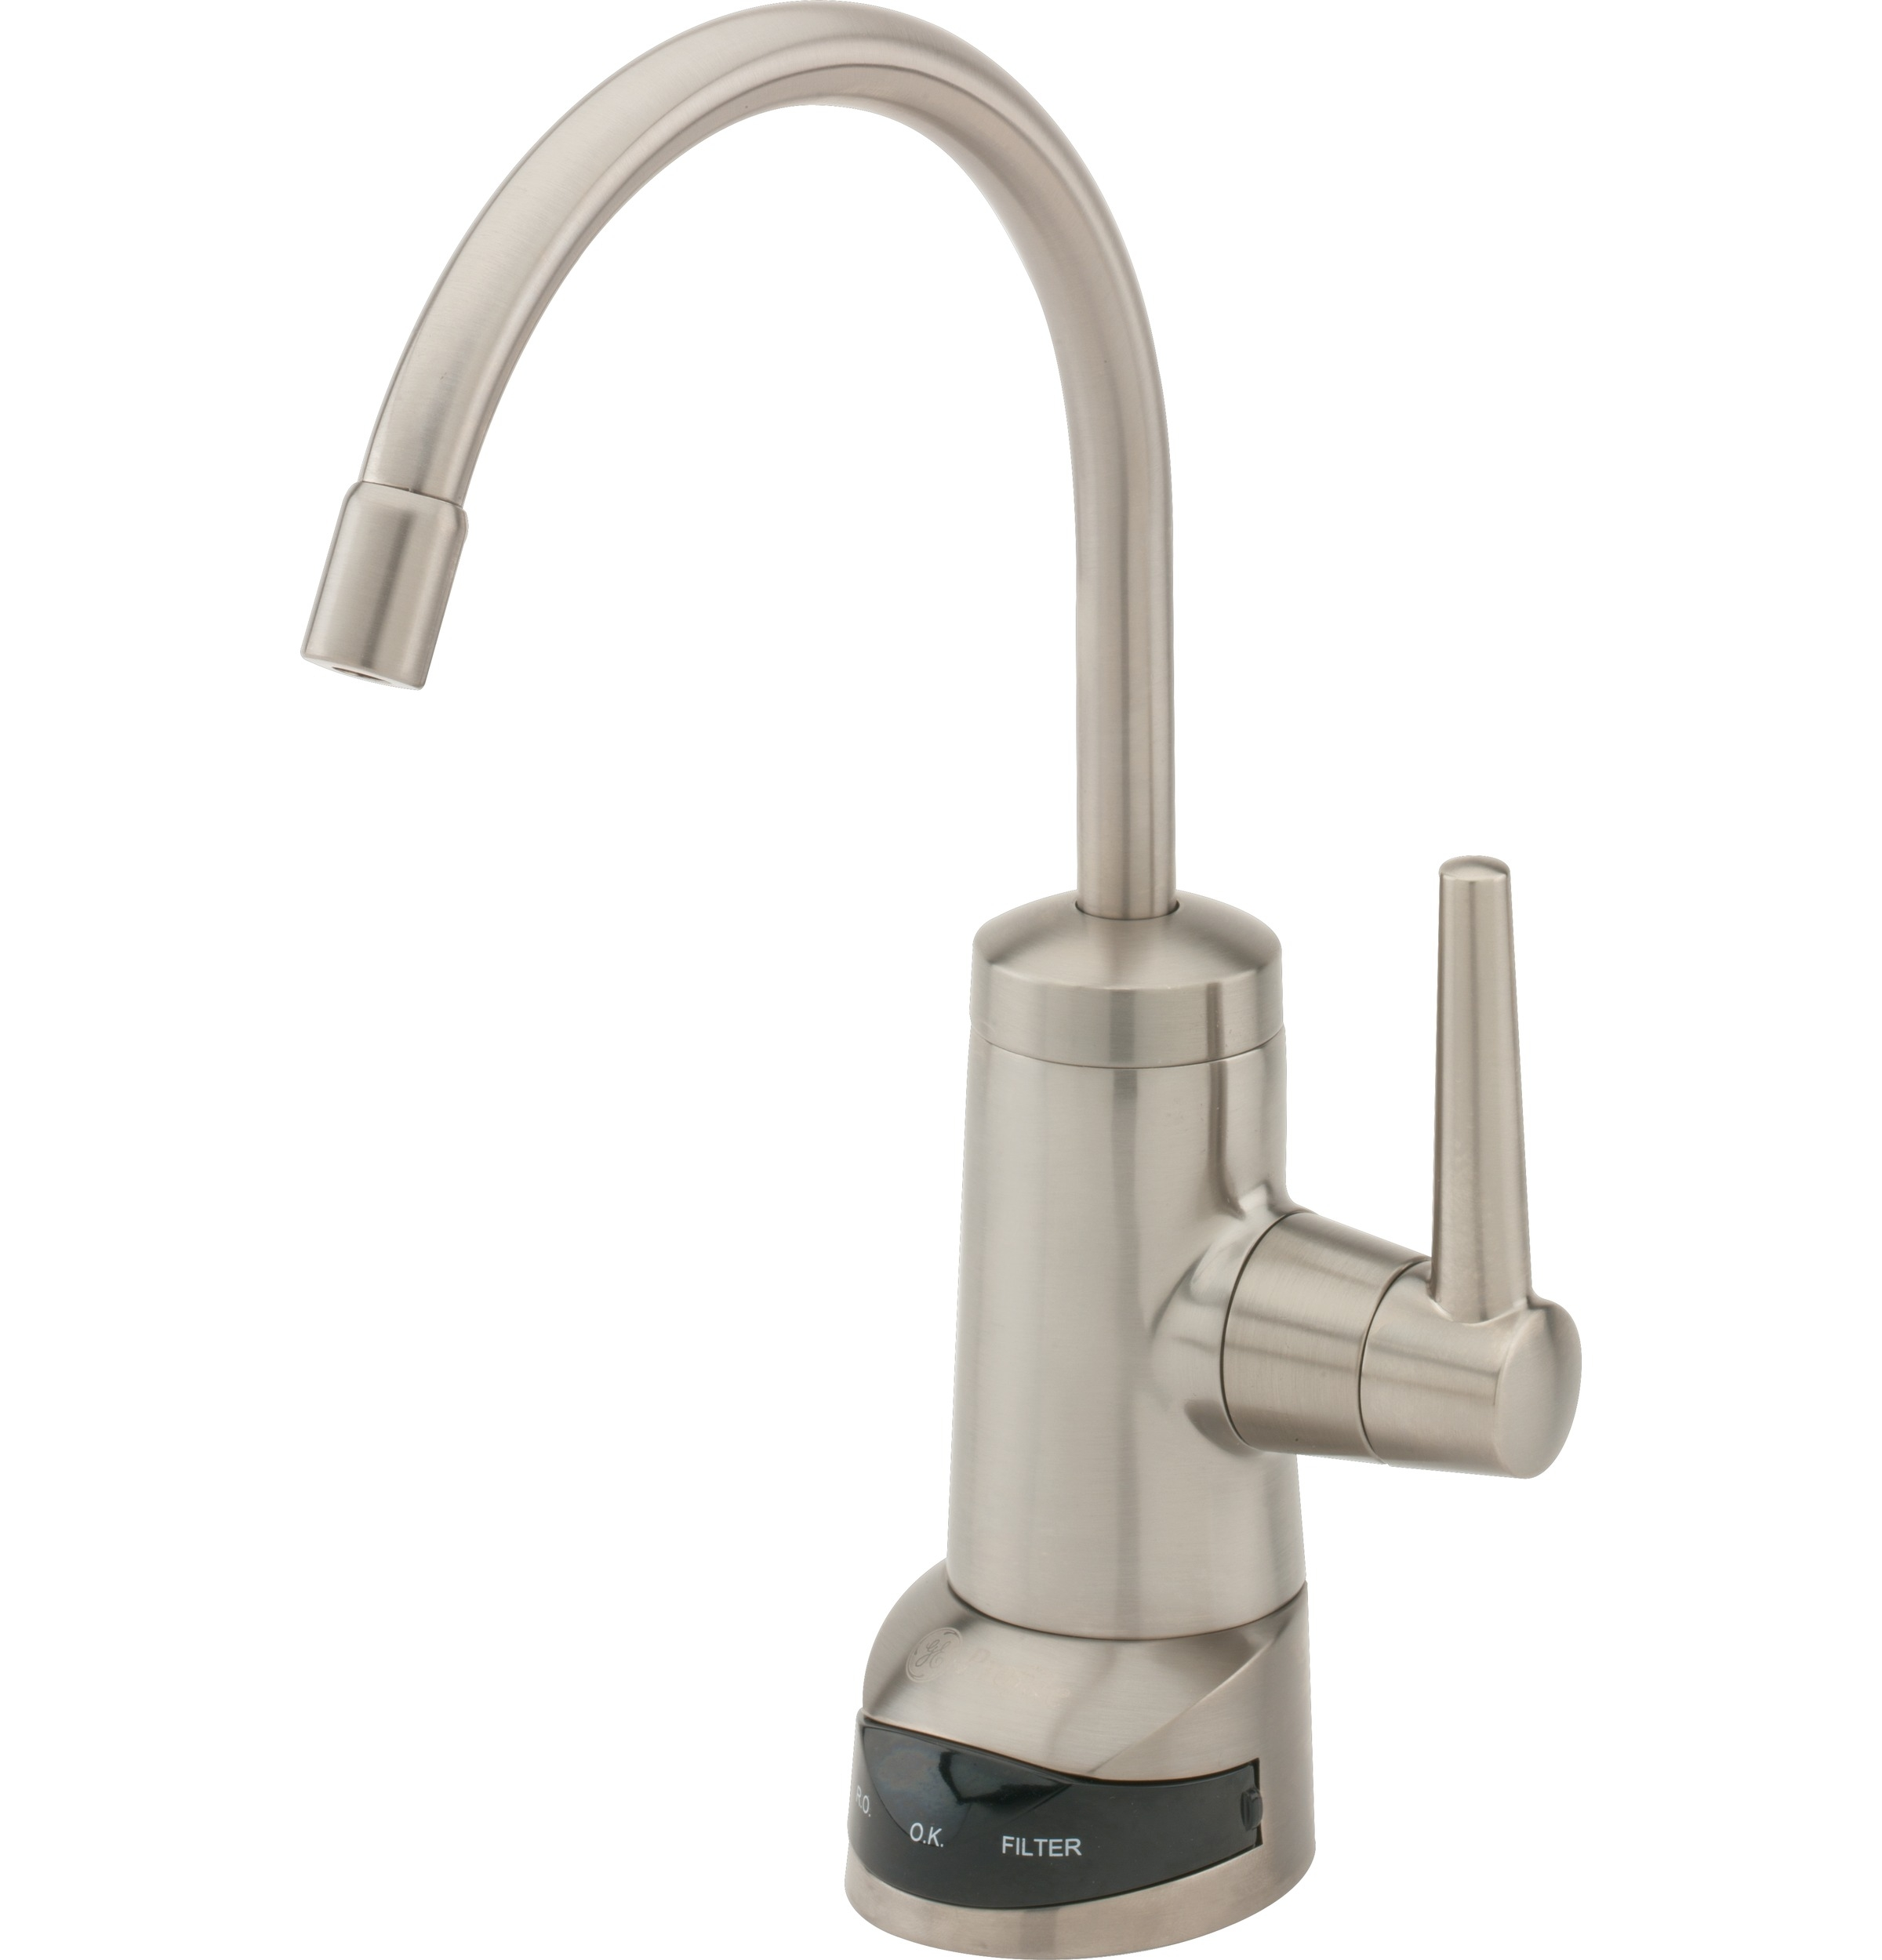 Ideas, faucet reverse osmosis filter faucet reverse osmosis filter ge profile reverse osmosis filtration system with brushed nickel 2400 x 2500  .